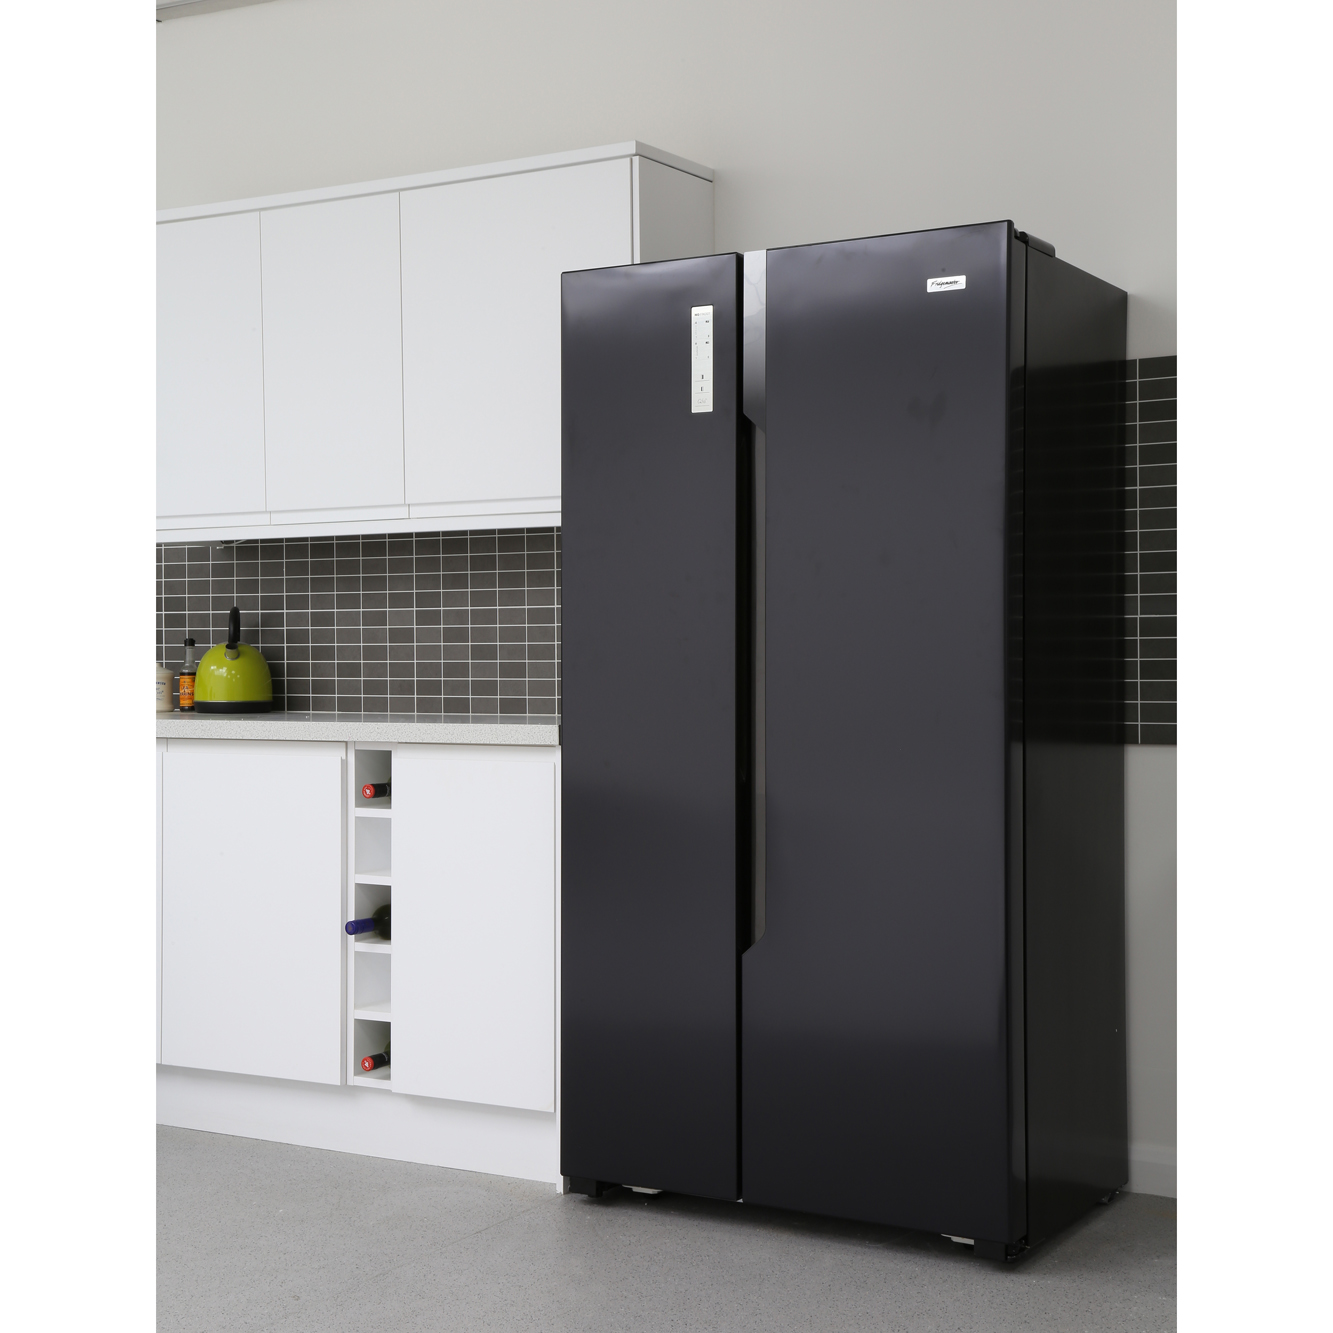 Black Glass American Fridge Freezer With Ice And Water